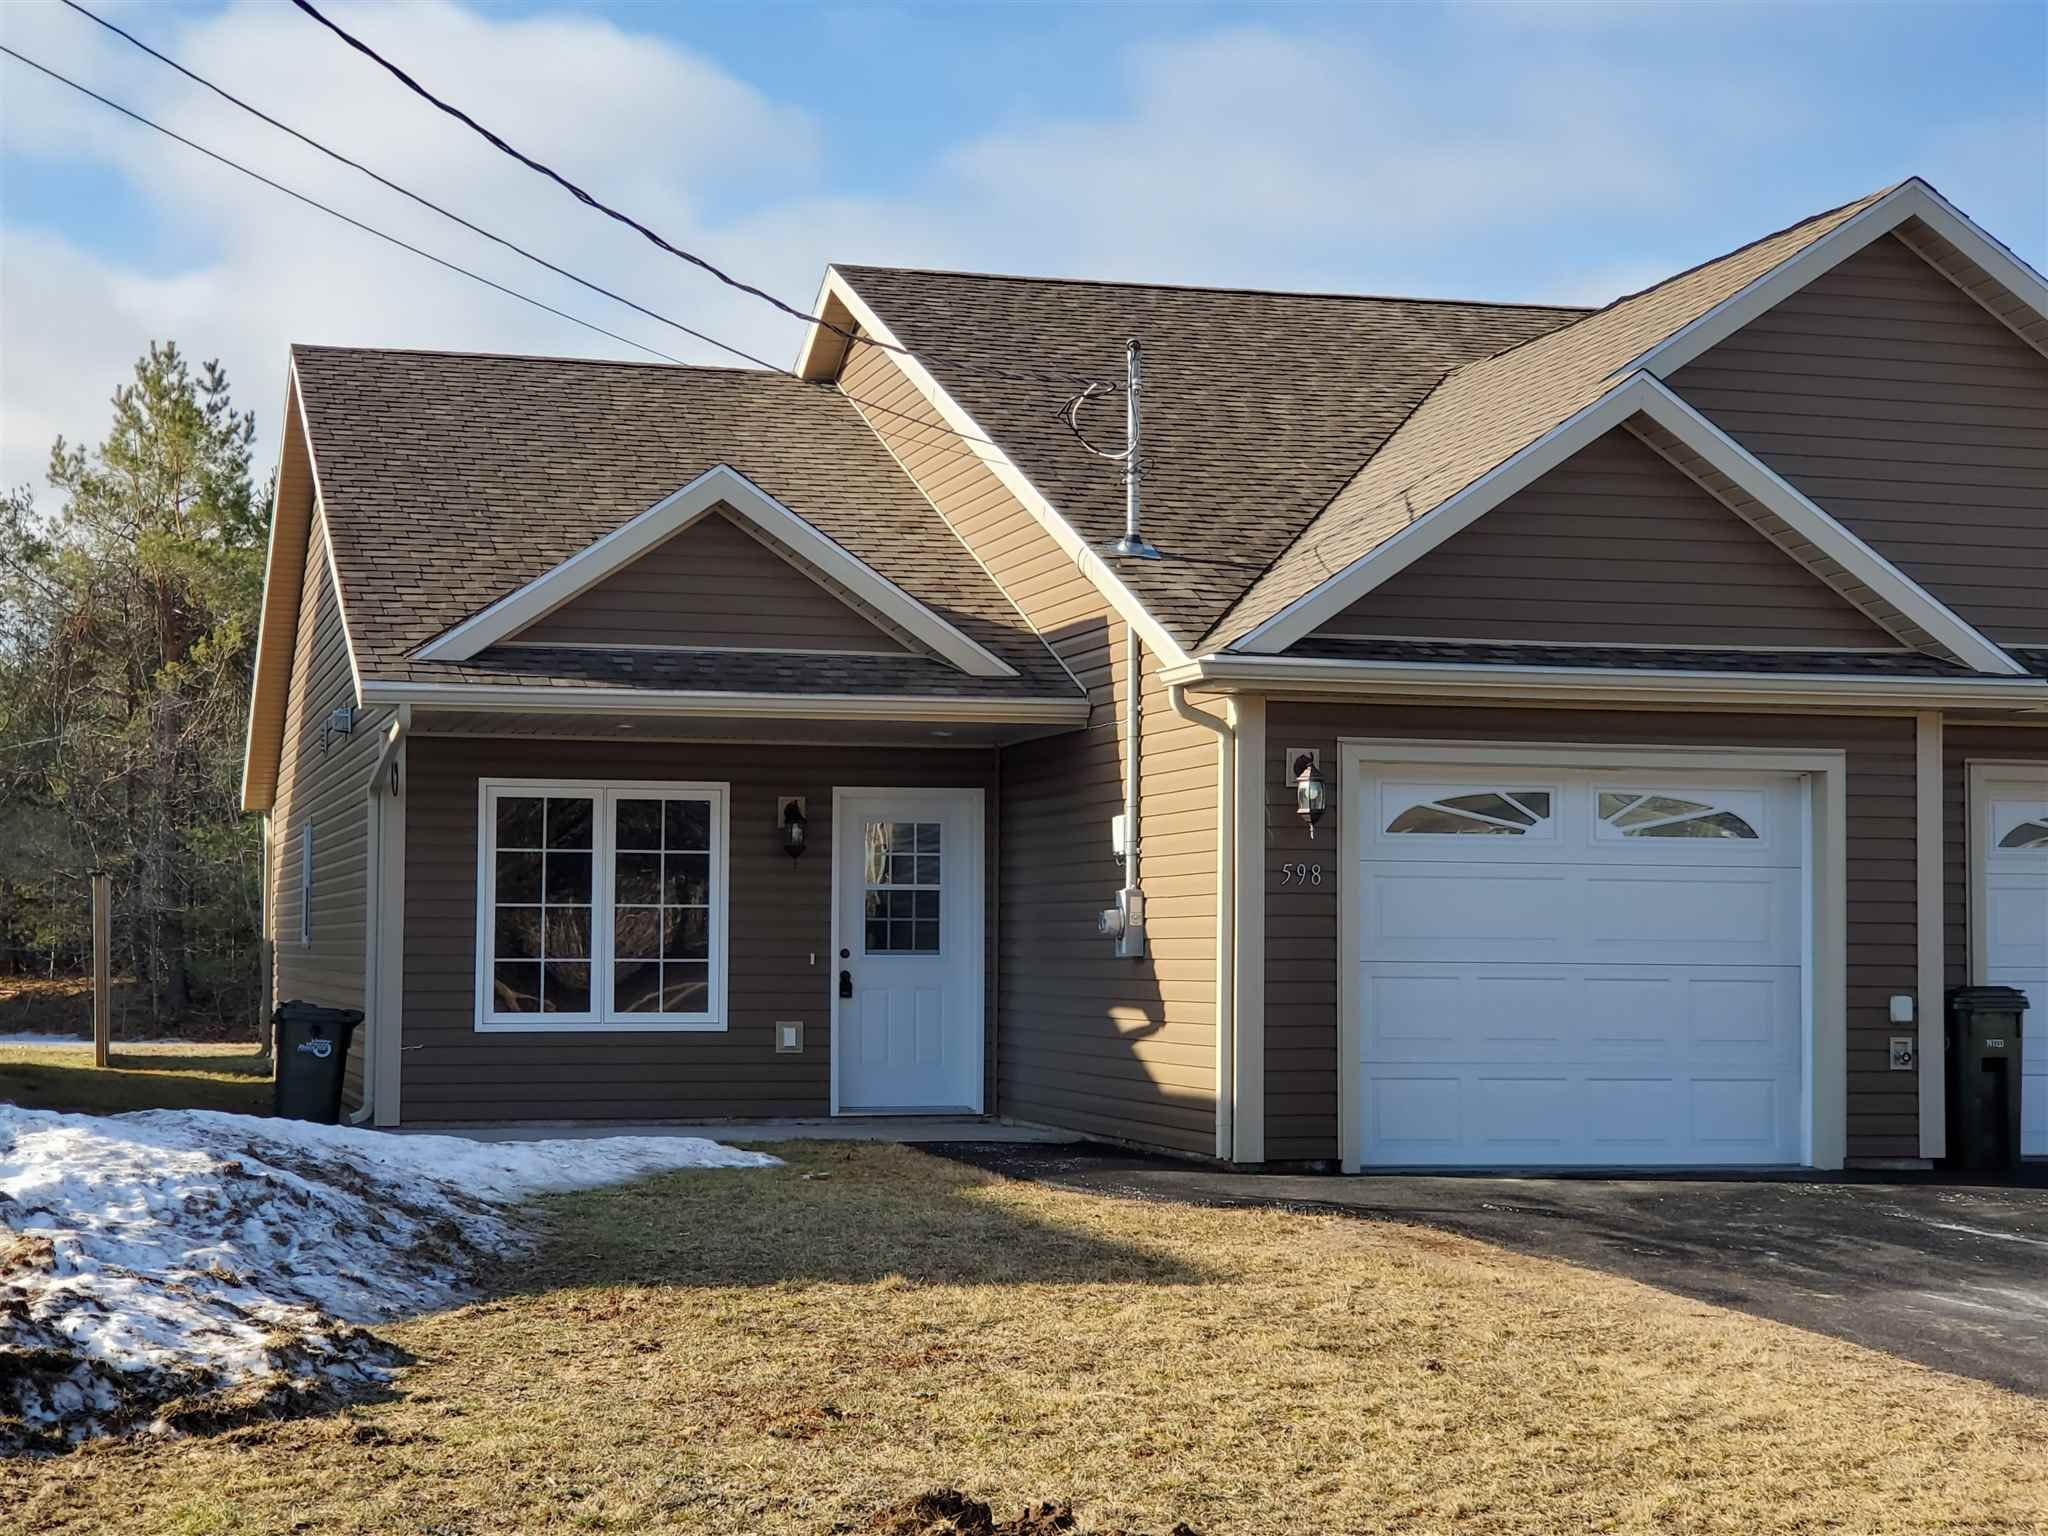 Main Photo: 598 Sampson Drive in Greenwood: 404-Kings County Residential for sale (Annapolis Valley)  : MLS®# 202105732